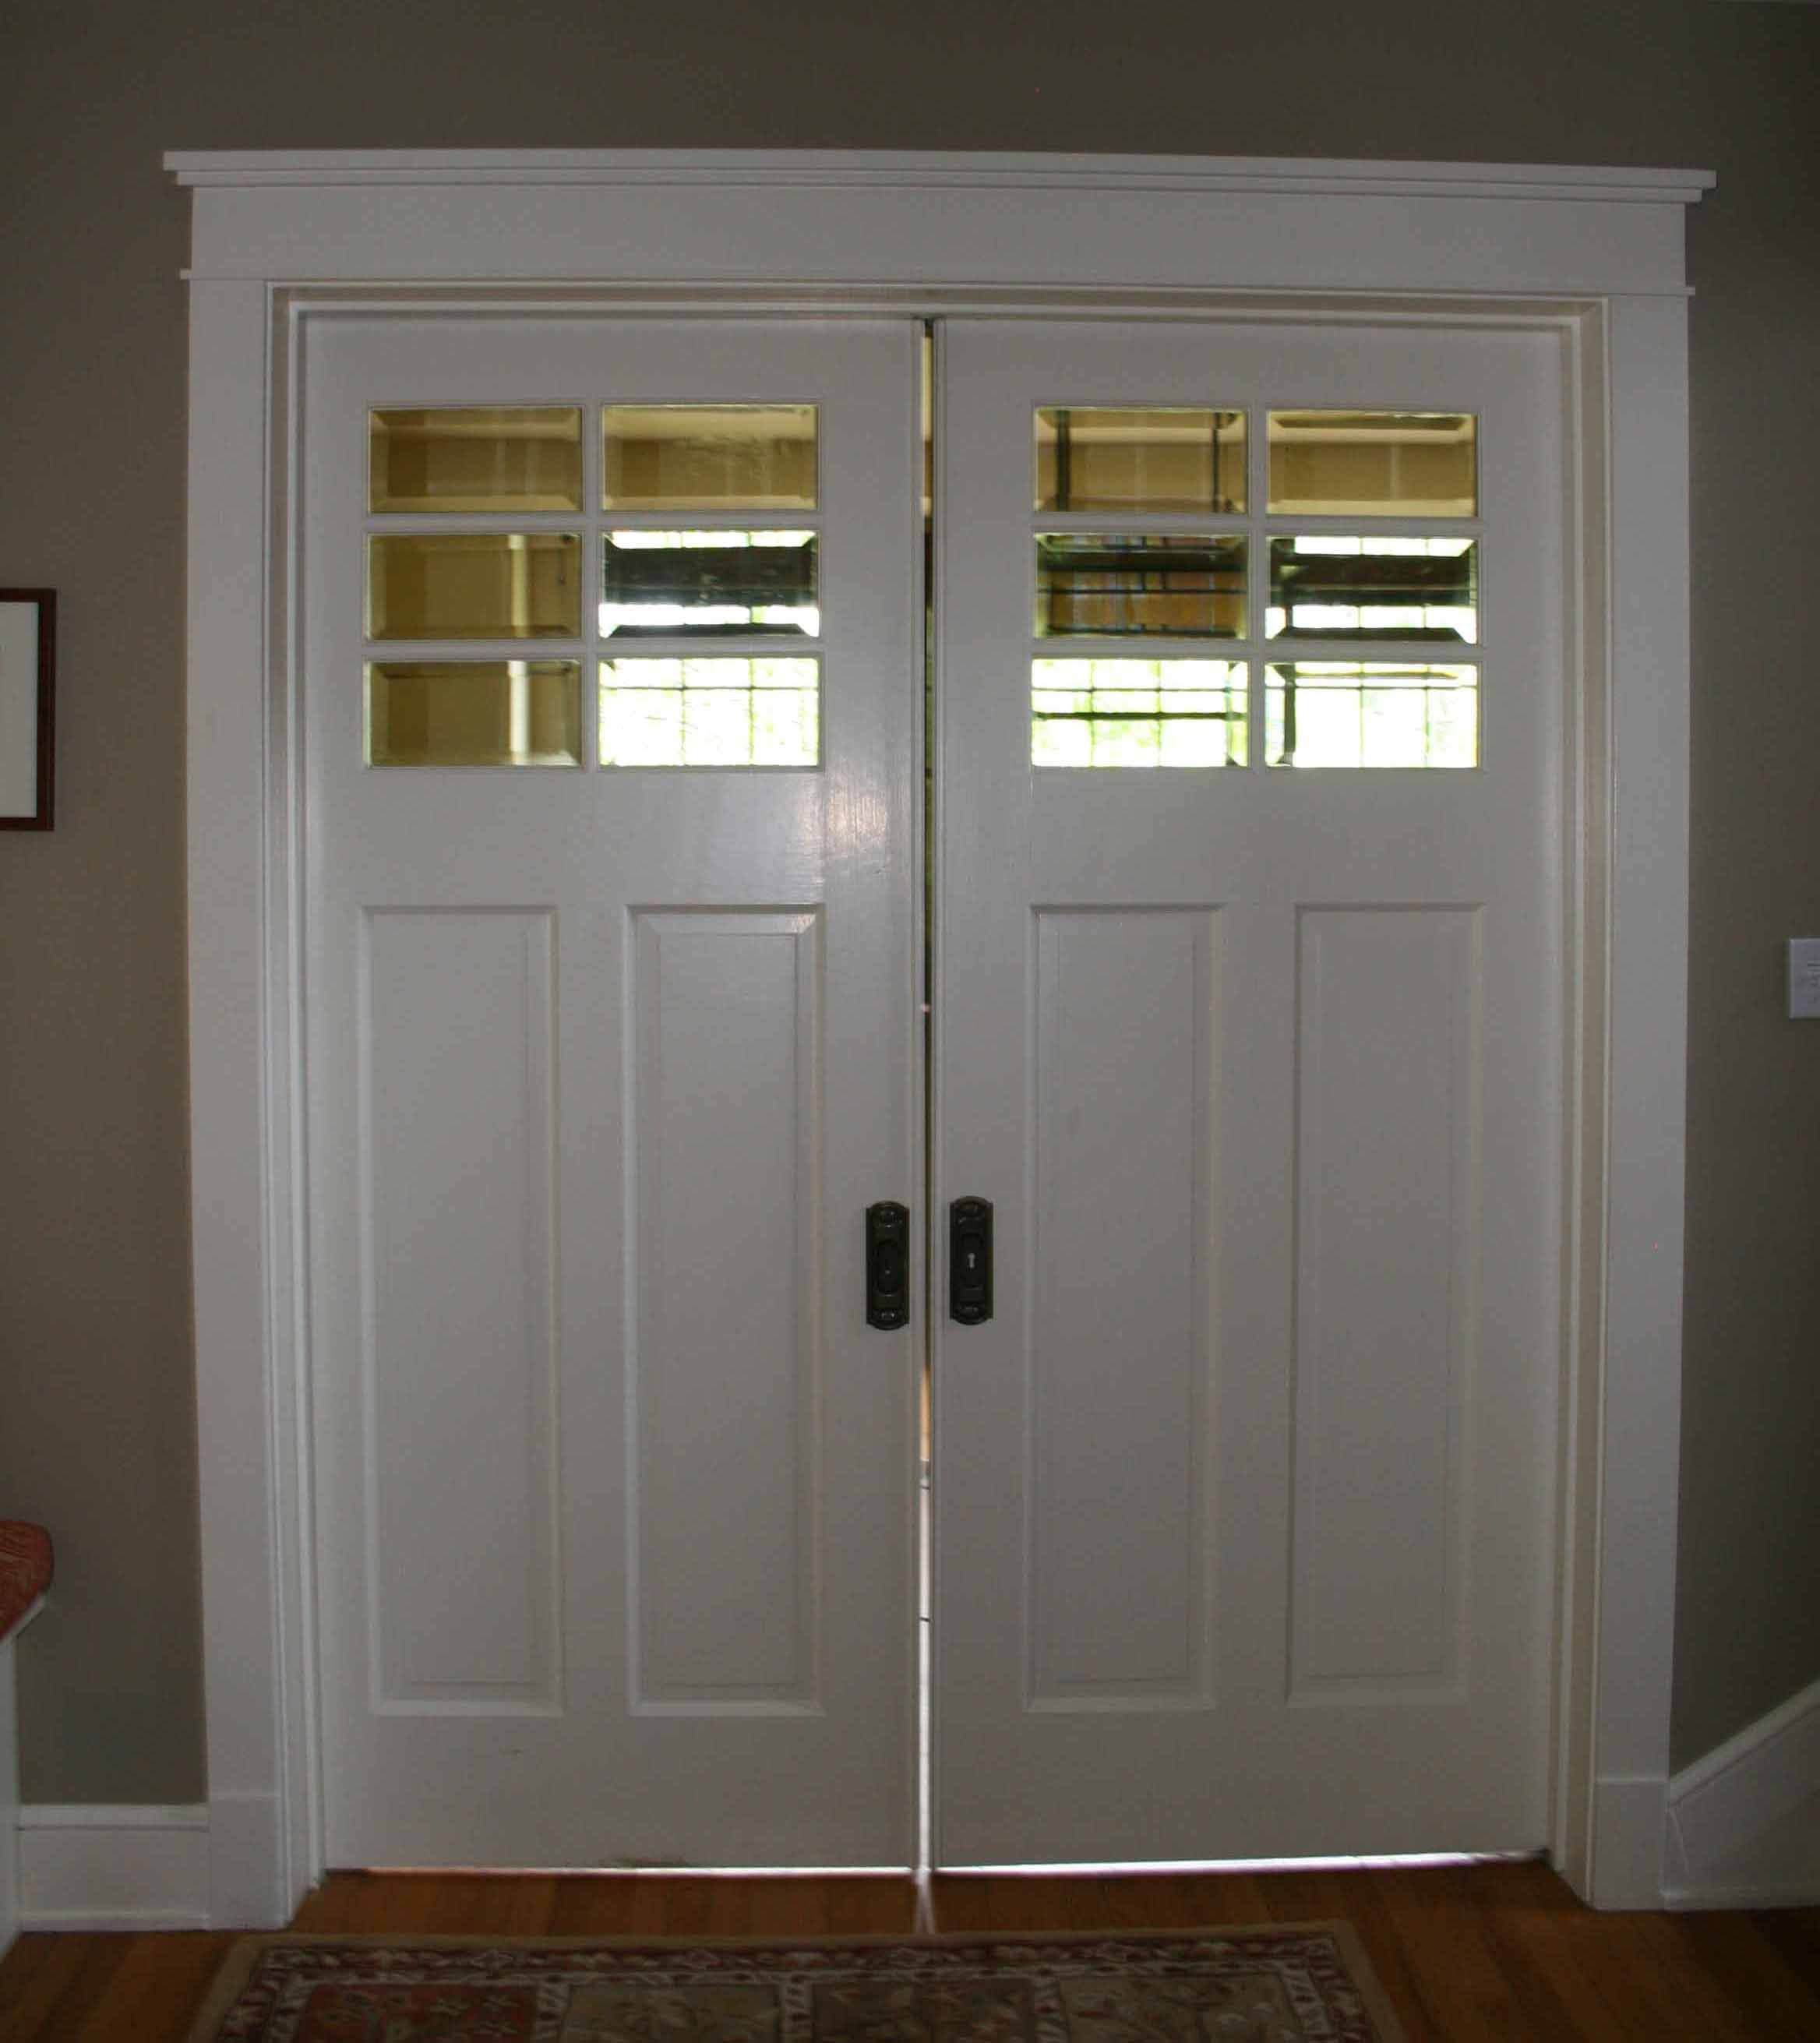 1000+ images about Pocket Doors on Pinterest | Pocket doors ...